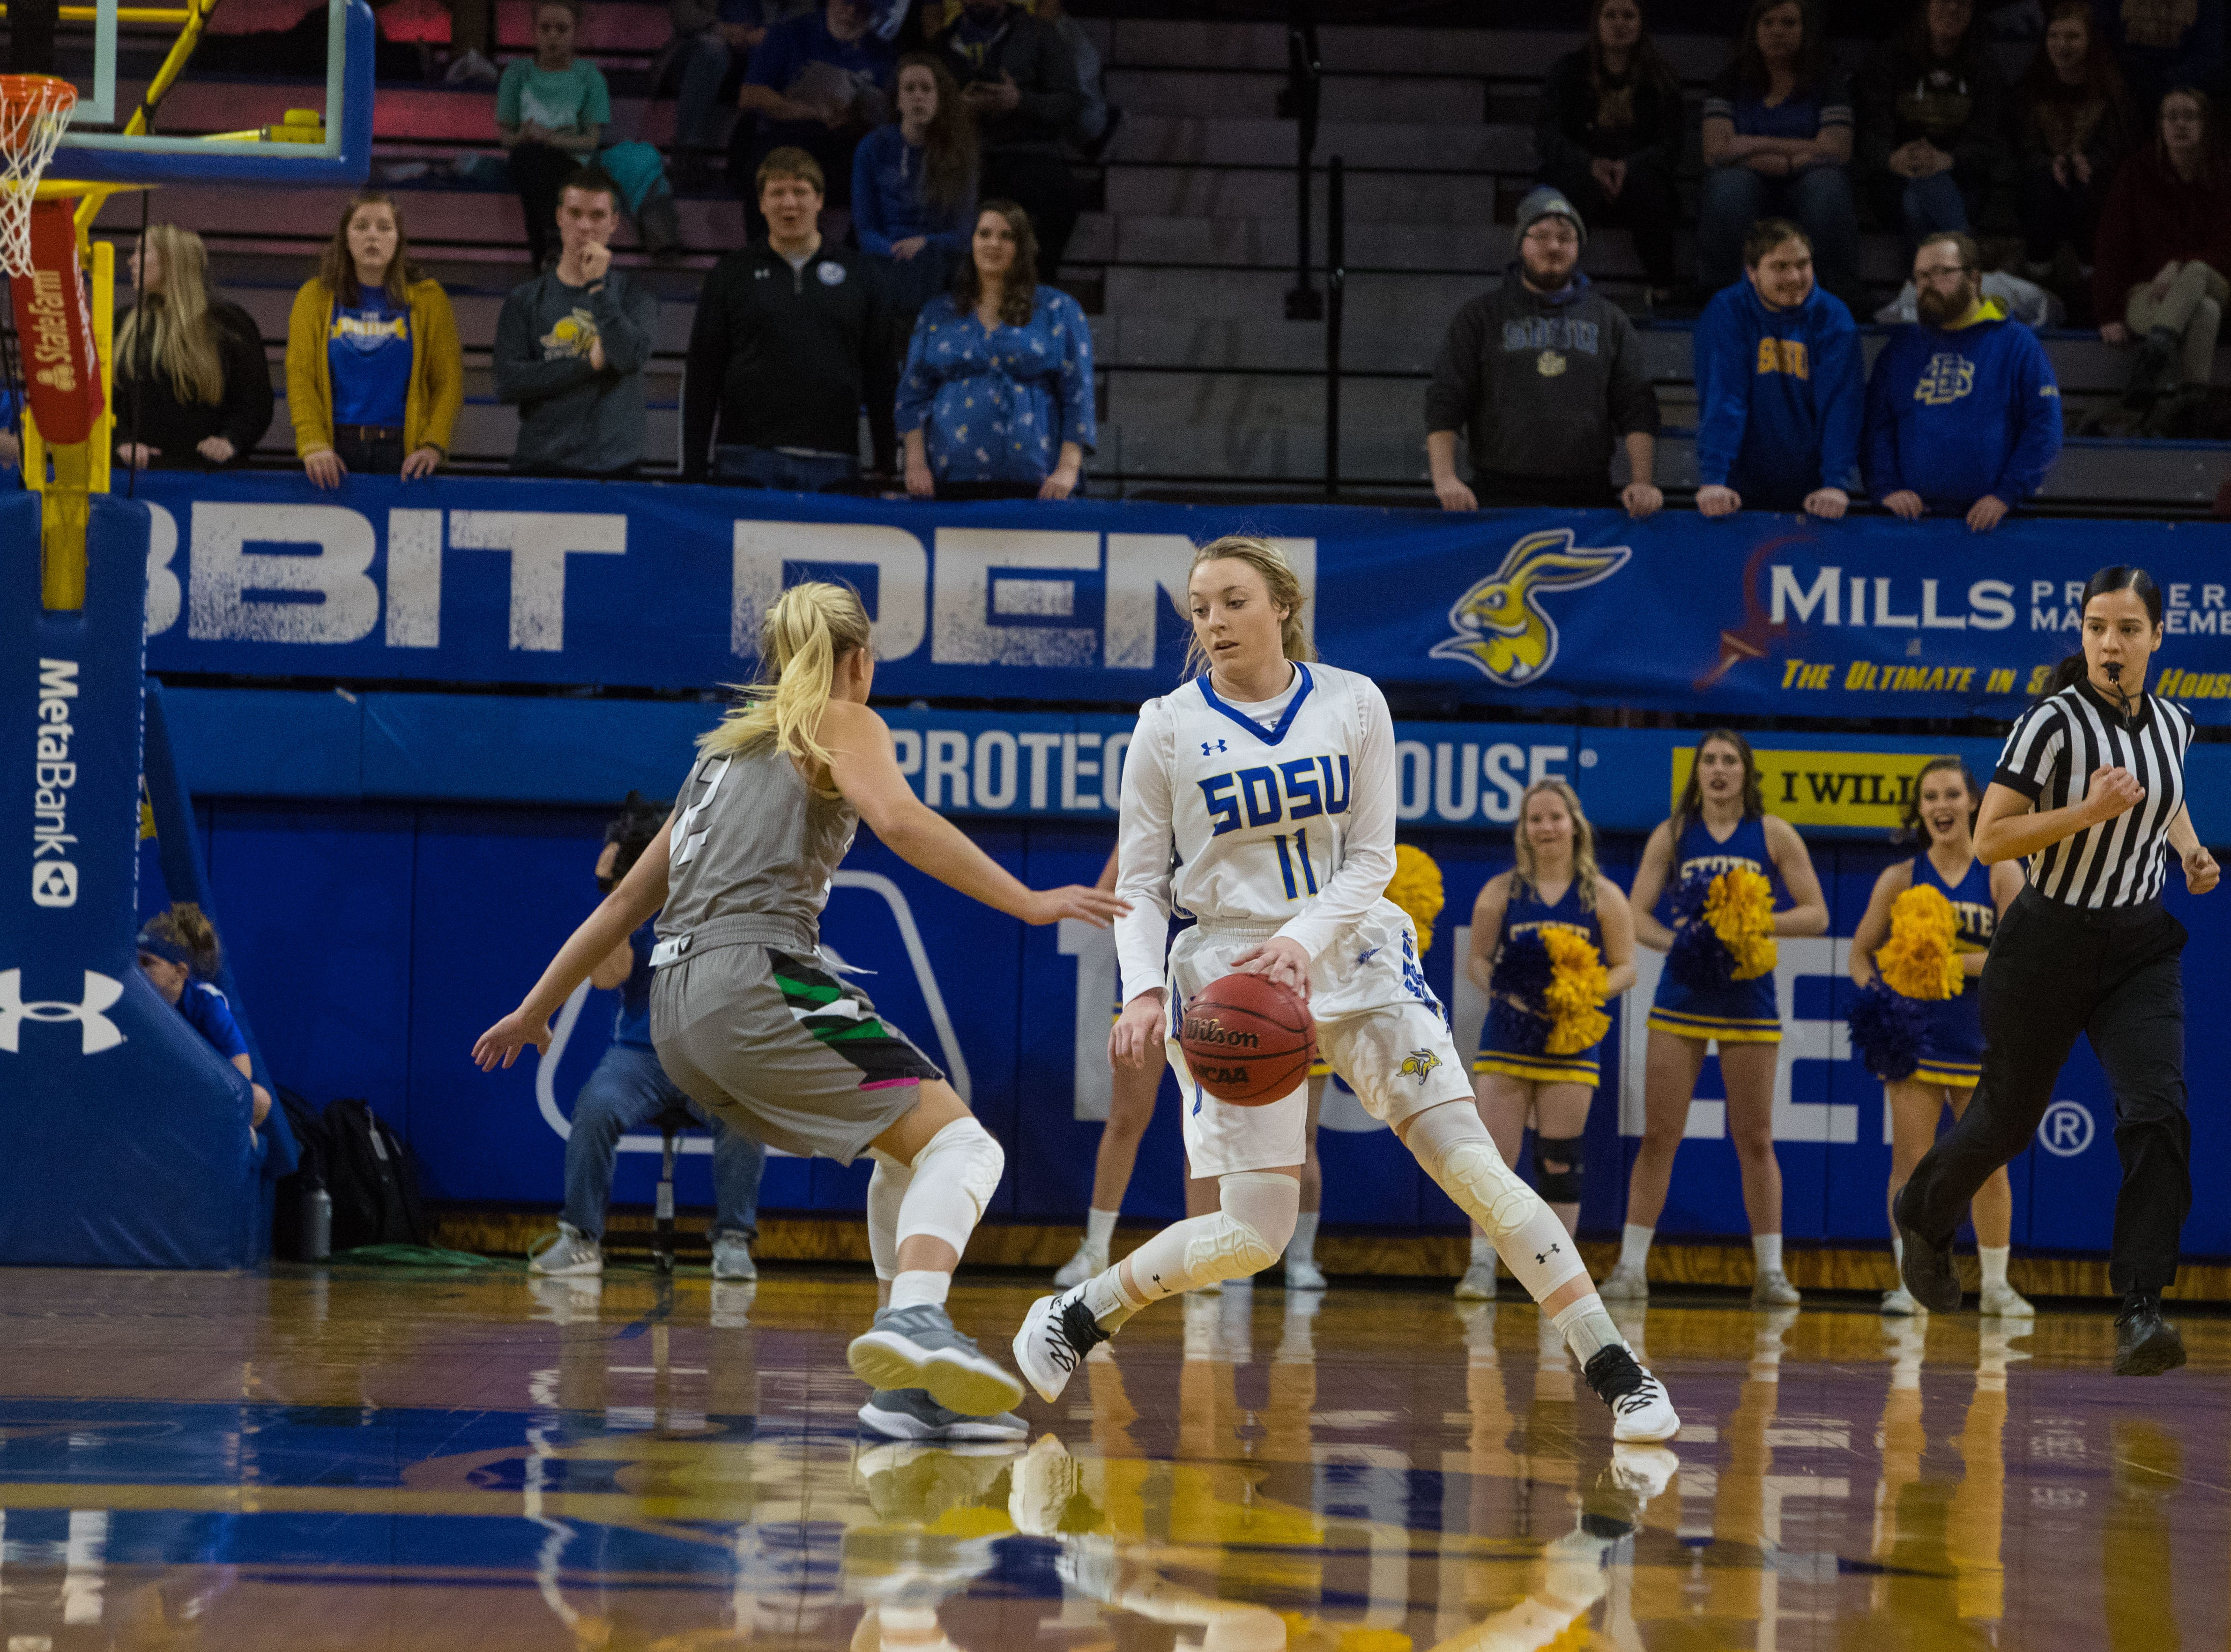 South Dakota State's Madison Guebert (11) dribbles the ball past North Dakota player during a game in Brookings, S.D., Saturday, Feb. 9, 2019.